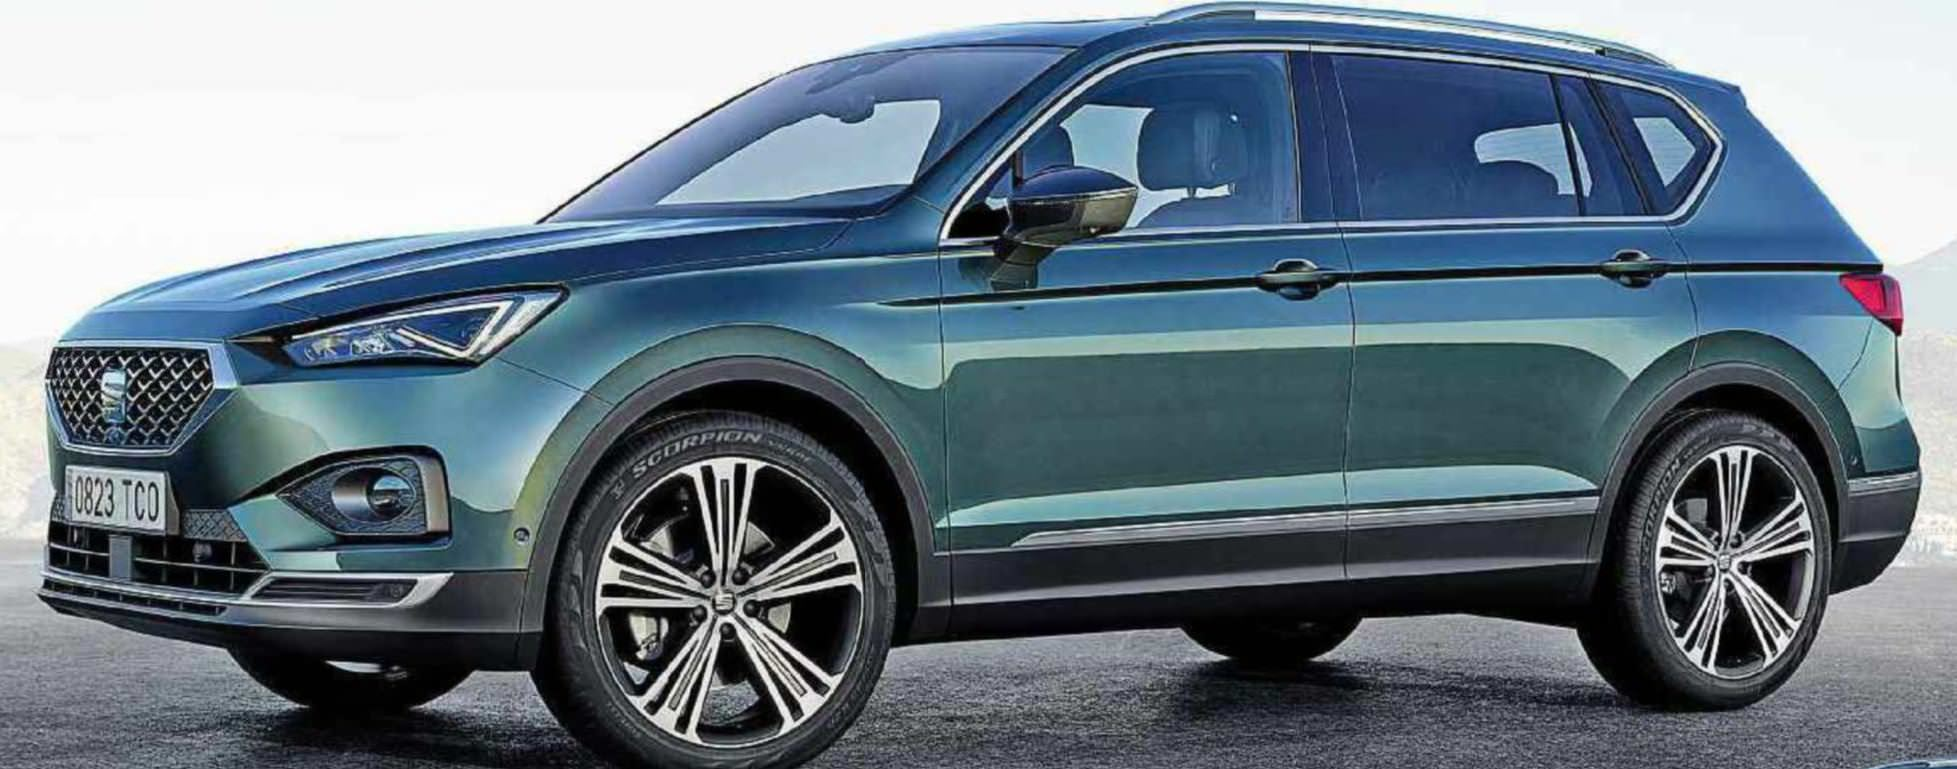 Seat Reveals New Range-topping Tarraco SUV